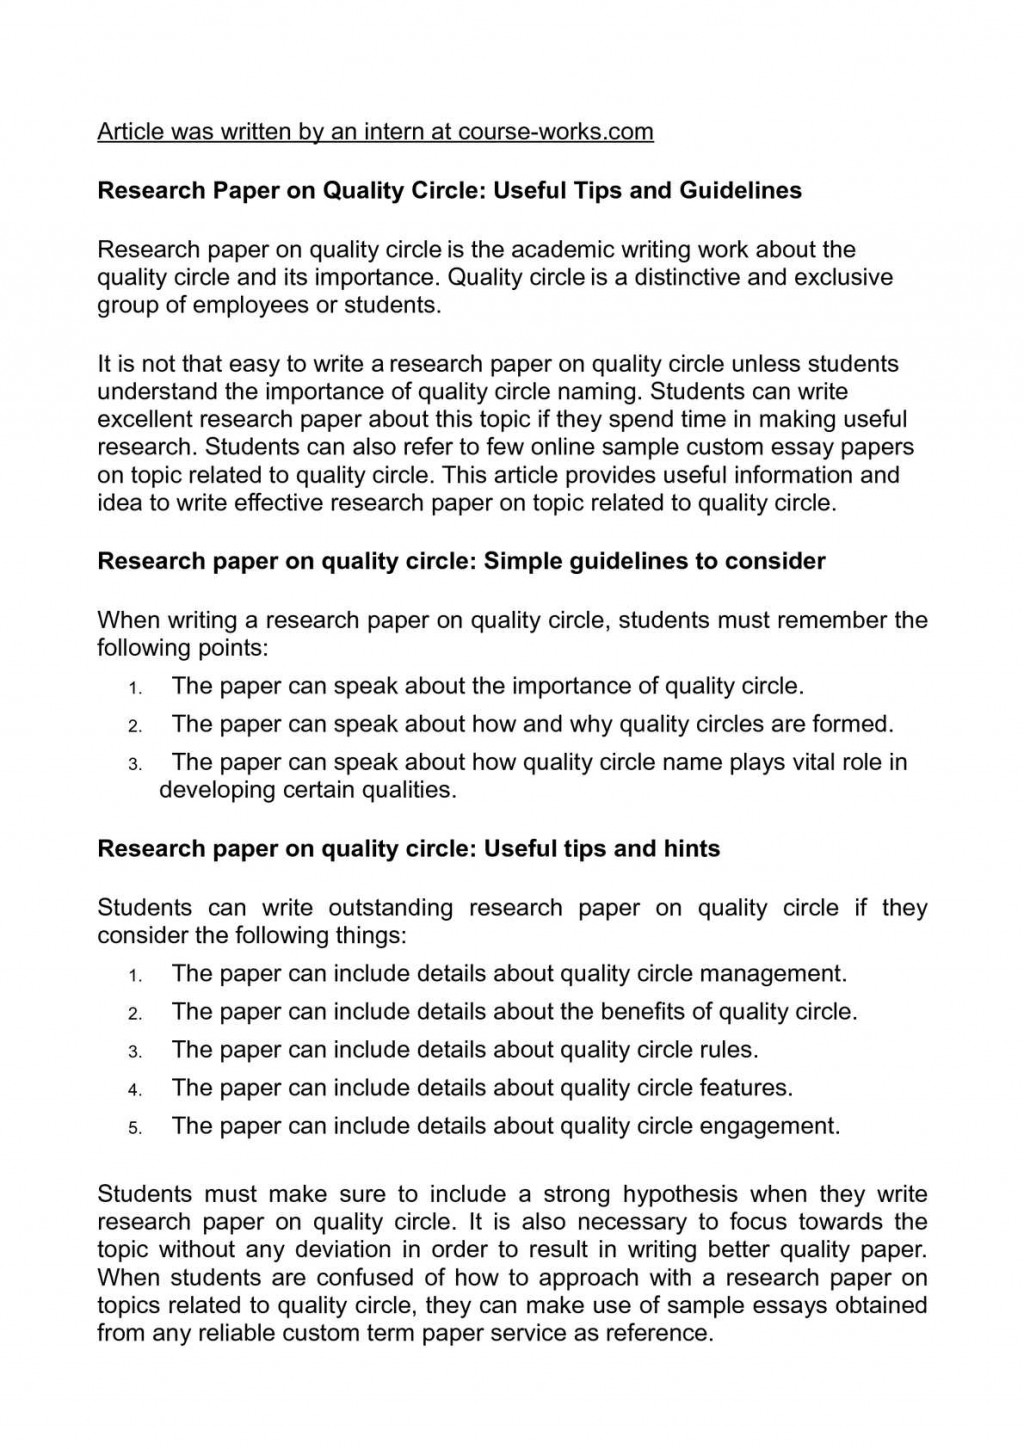 008 Research Paper P1 Topics To Writebout In Shocking Write About A Health On Large